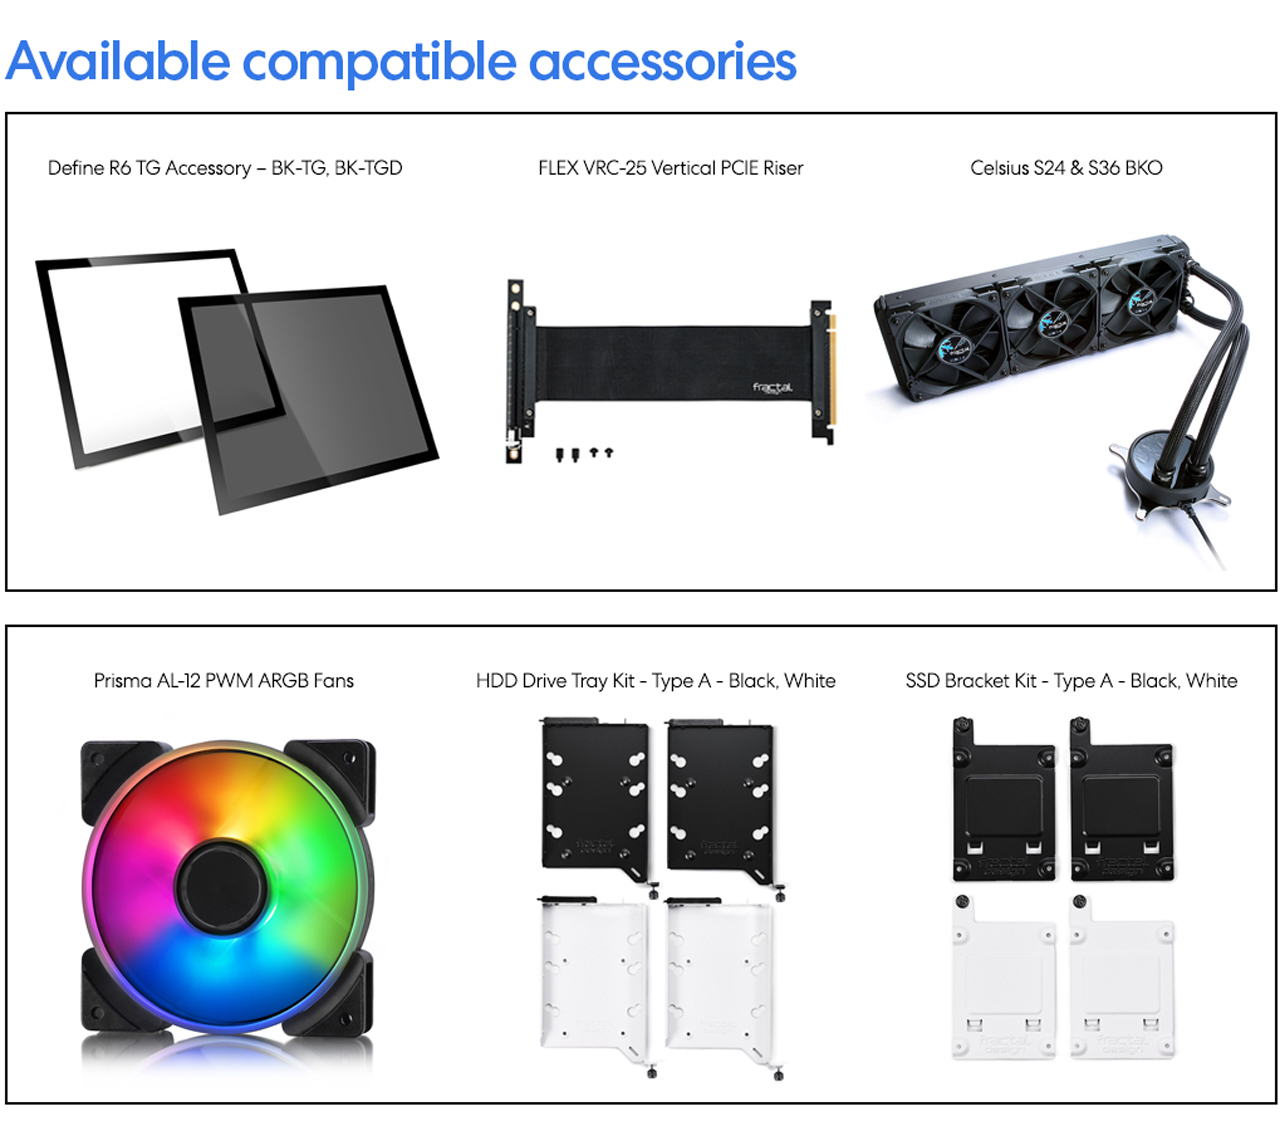 Fractal Vector RS available compatible accessories